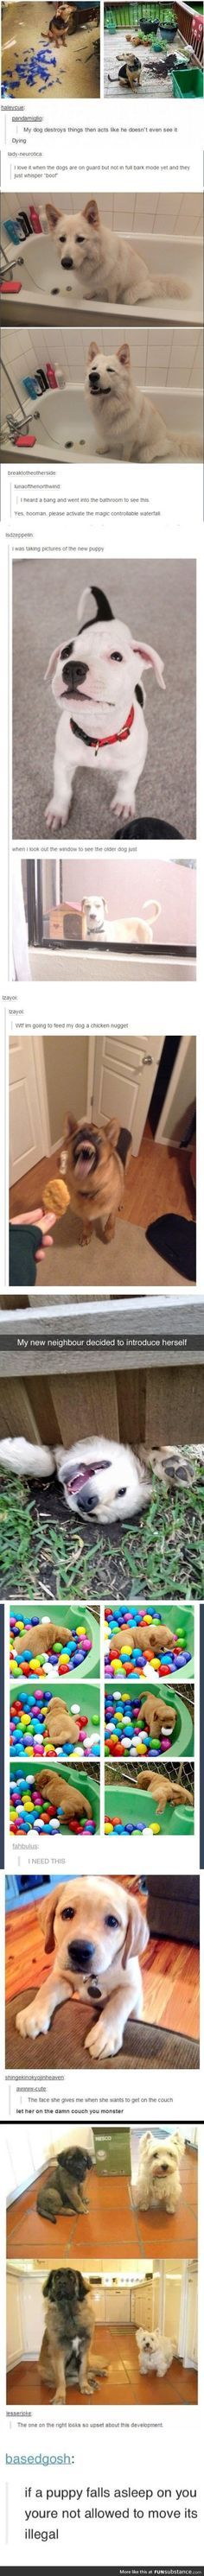 Tumblr Dog edition. Ha-ha the first one is the best